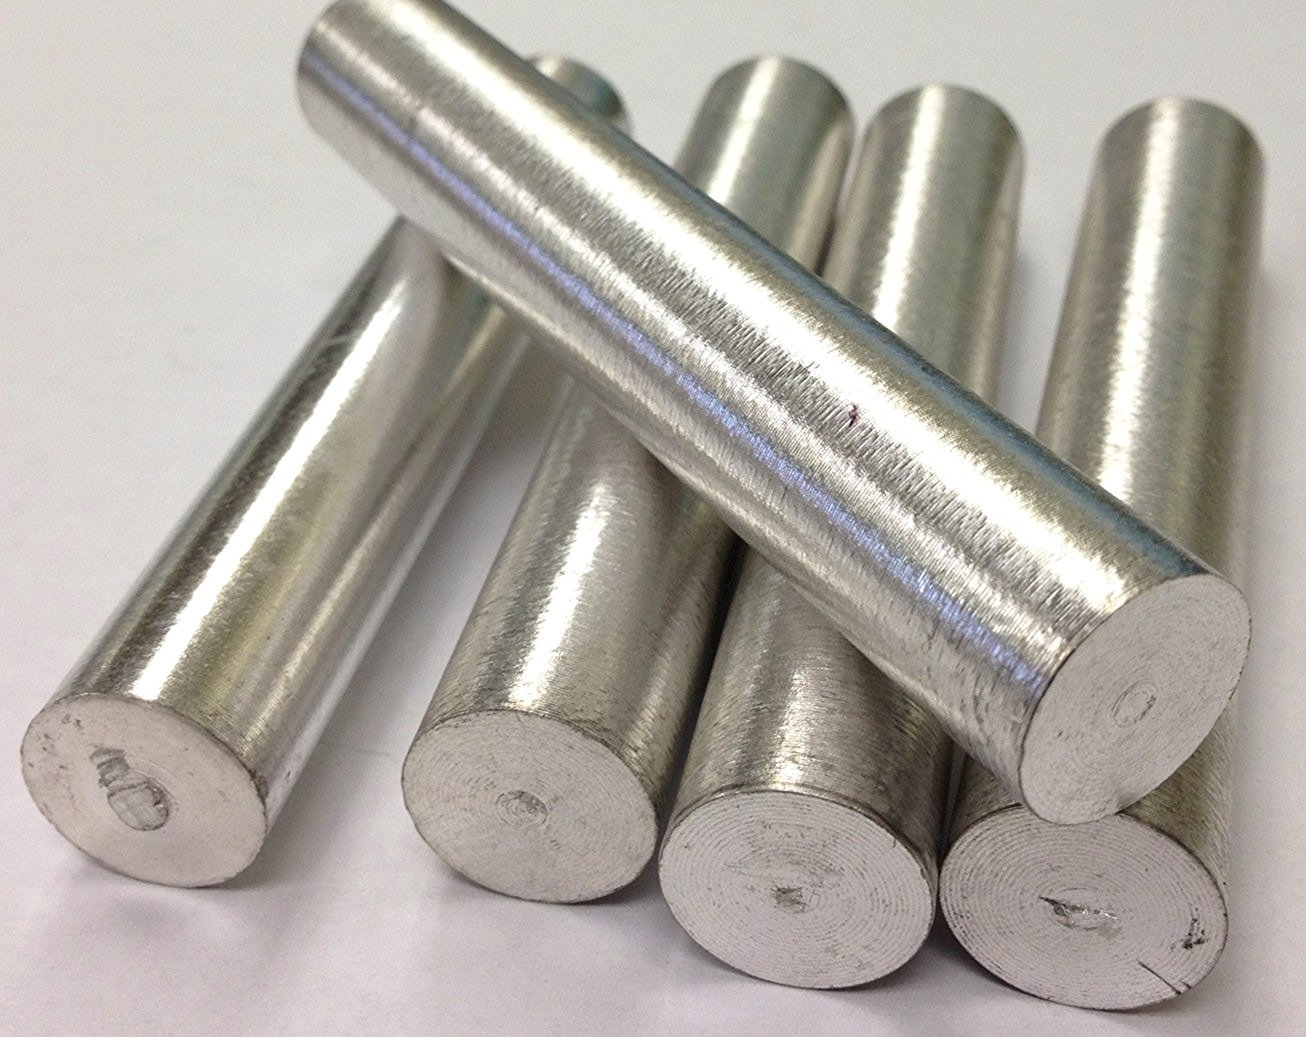 Barra de metal magnesio Mg 18 mm x 100 mm (6 unidades): Amazon.es: Amazon.es